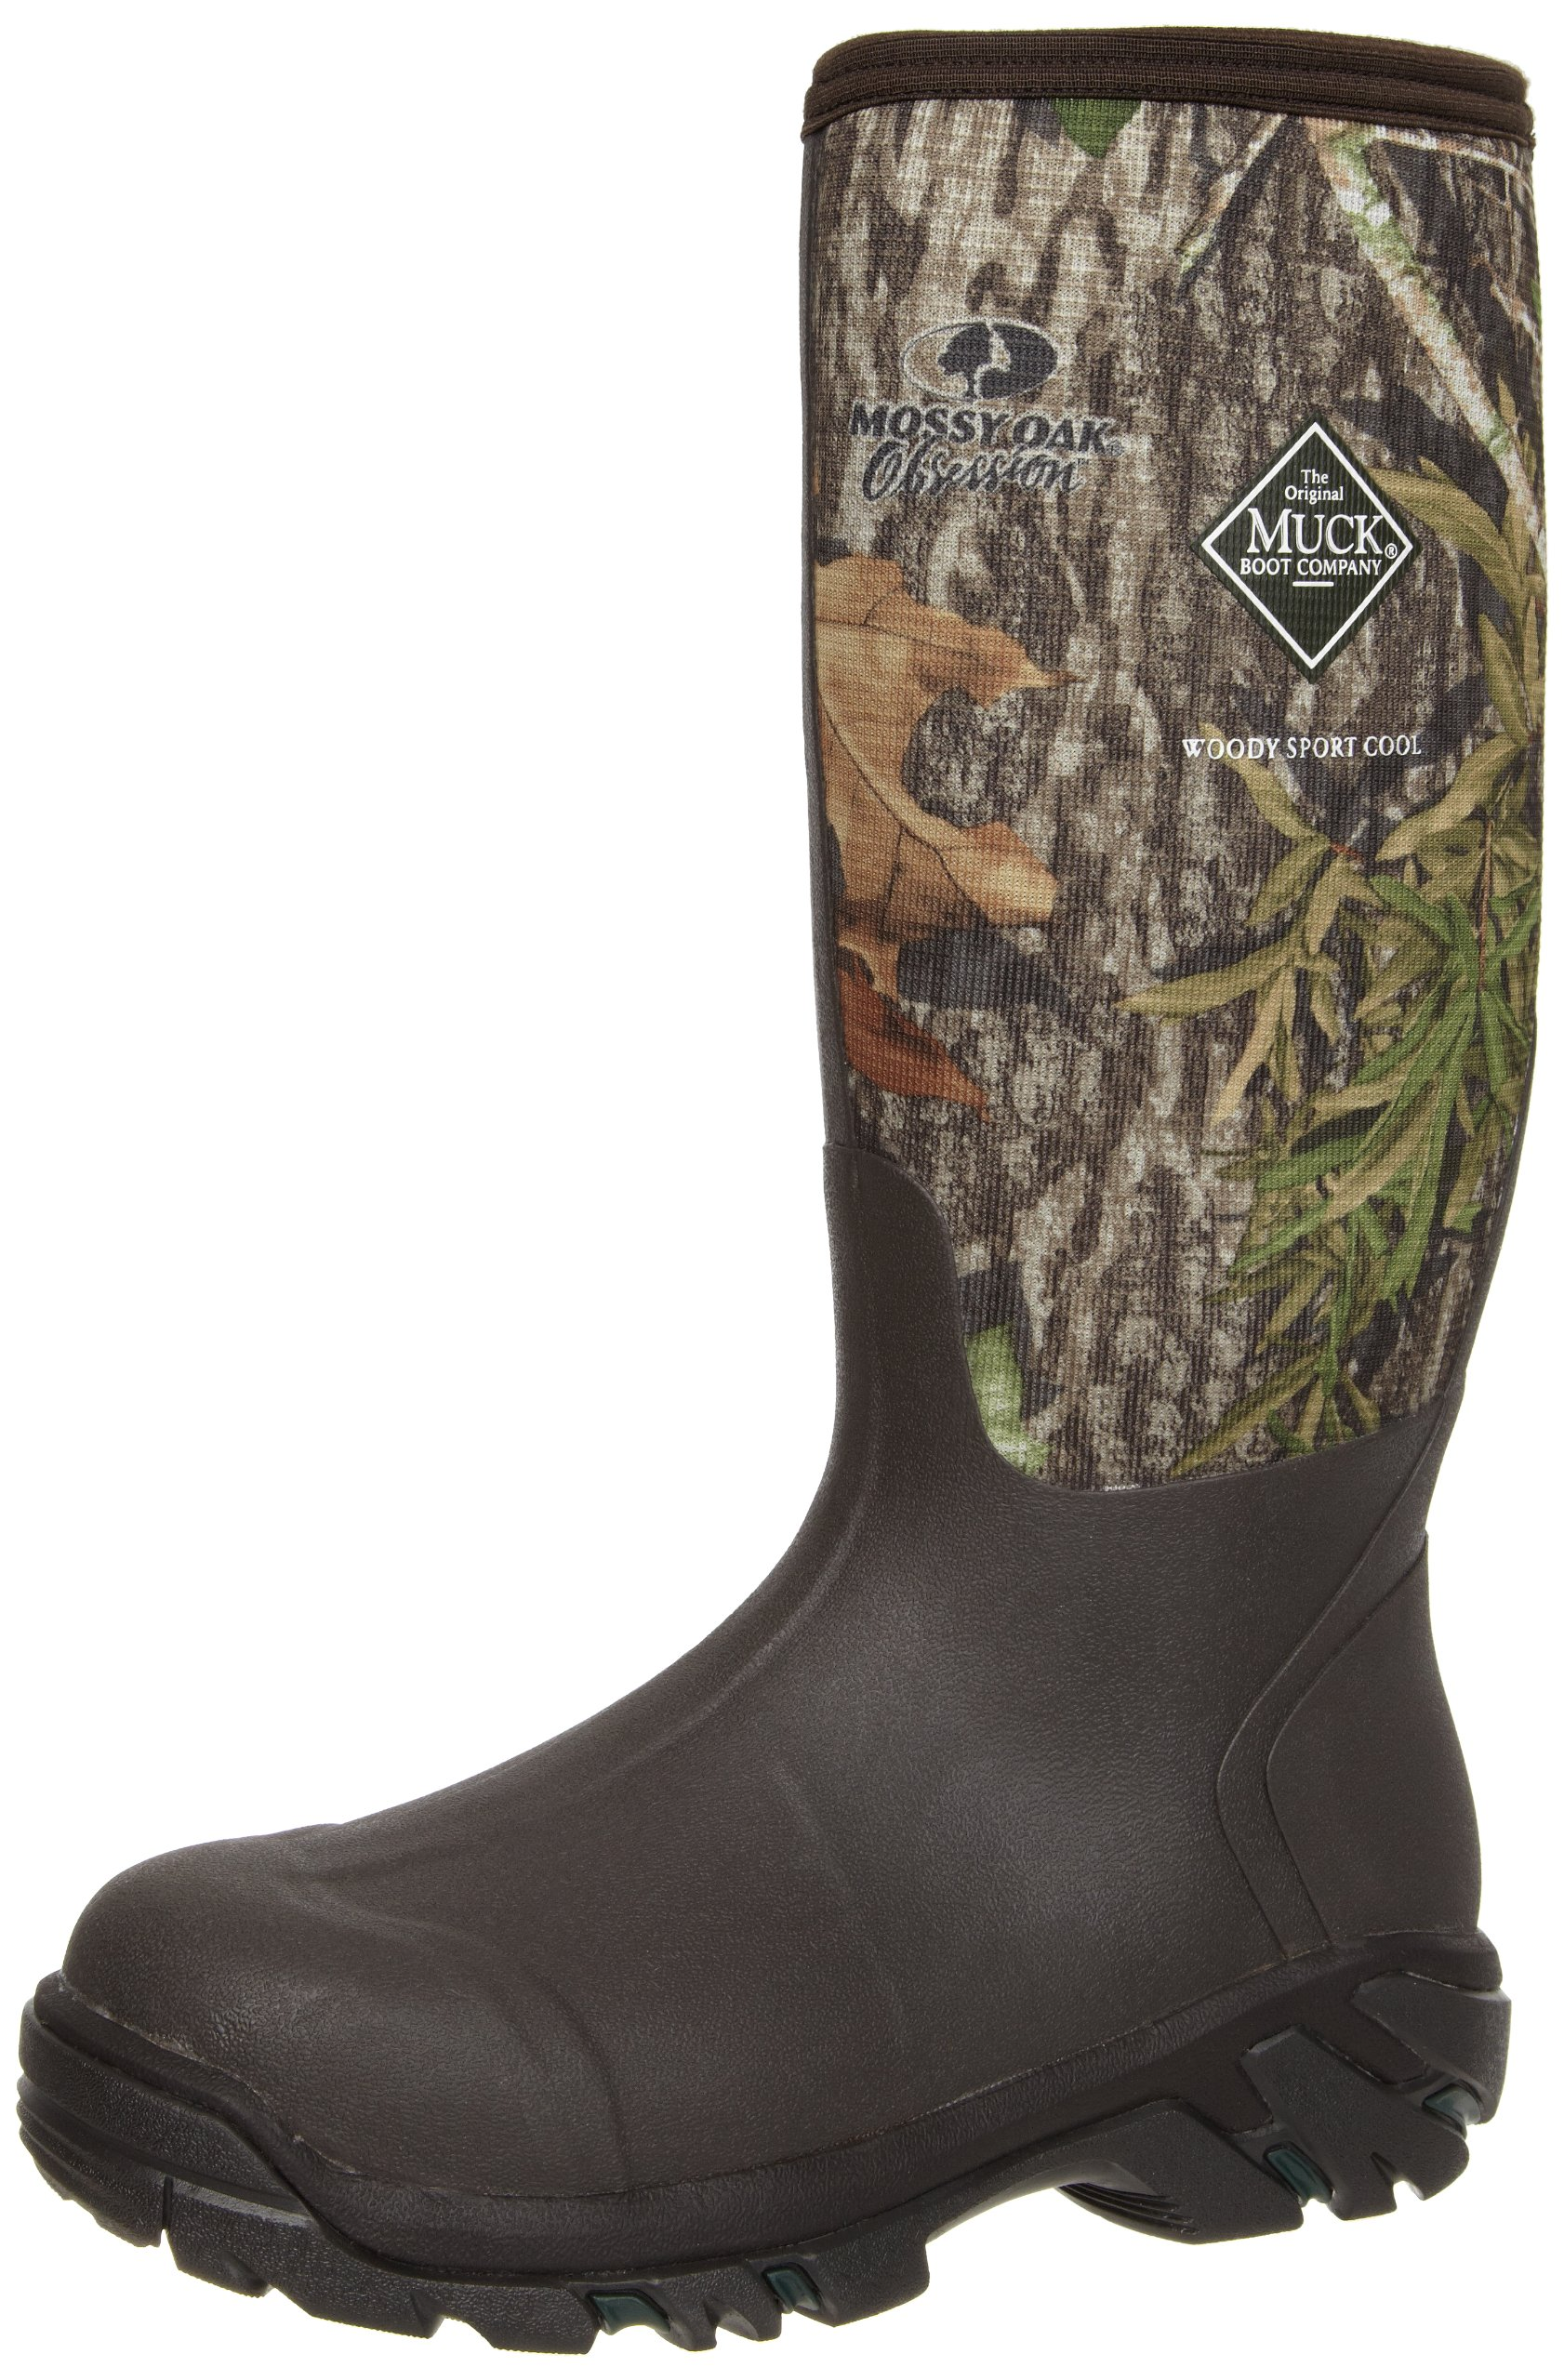 MuckBoots Woody Sport Cool Hunting Boot,Mossy Oak Obsession,11 M US Mens/12 M US Womens